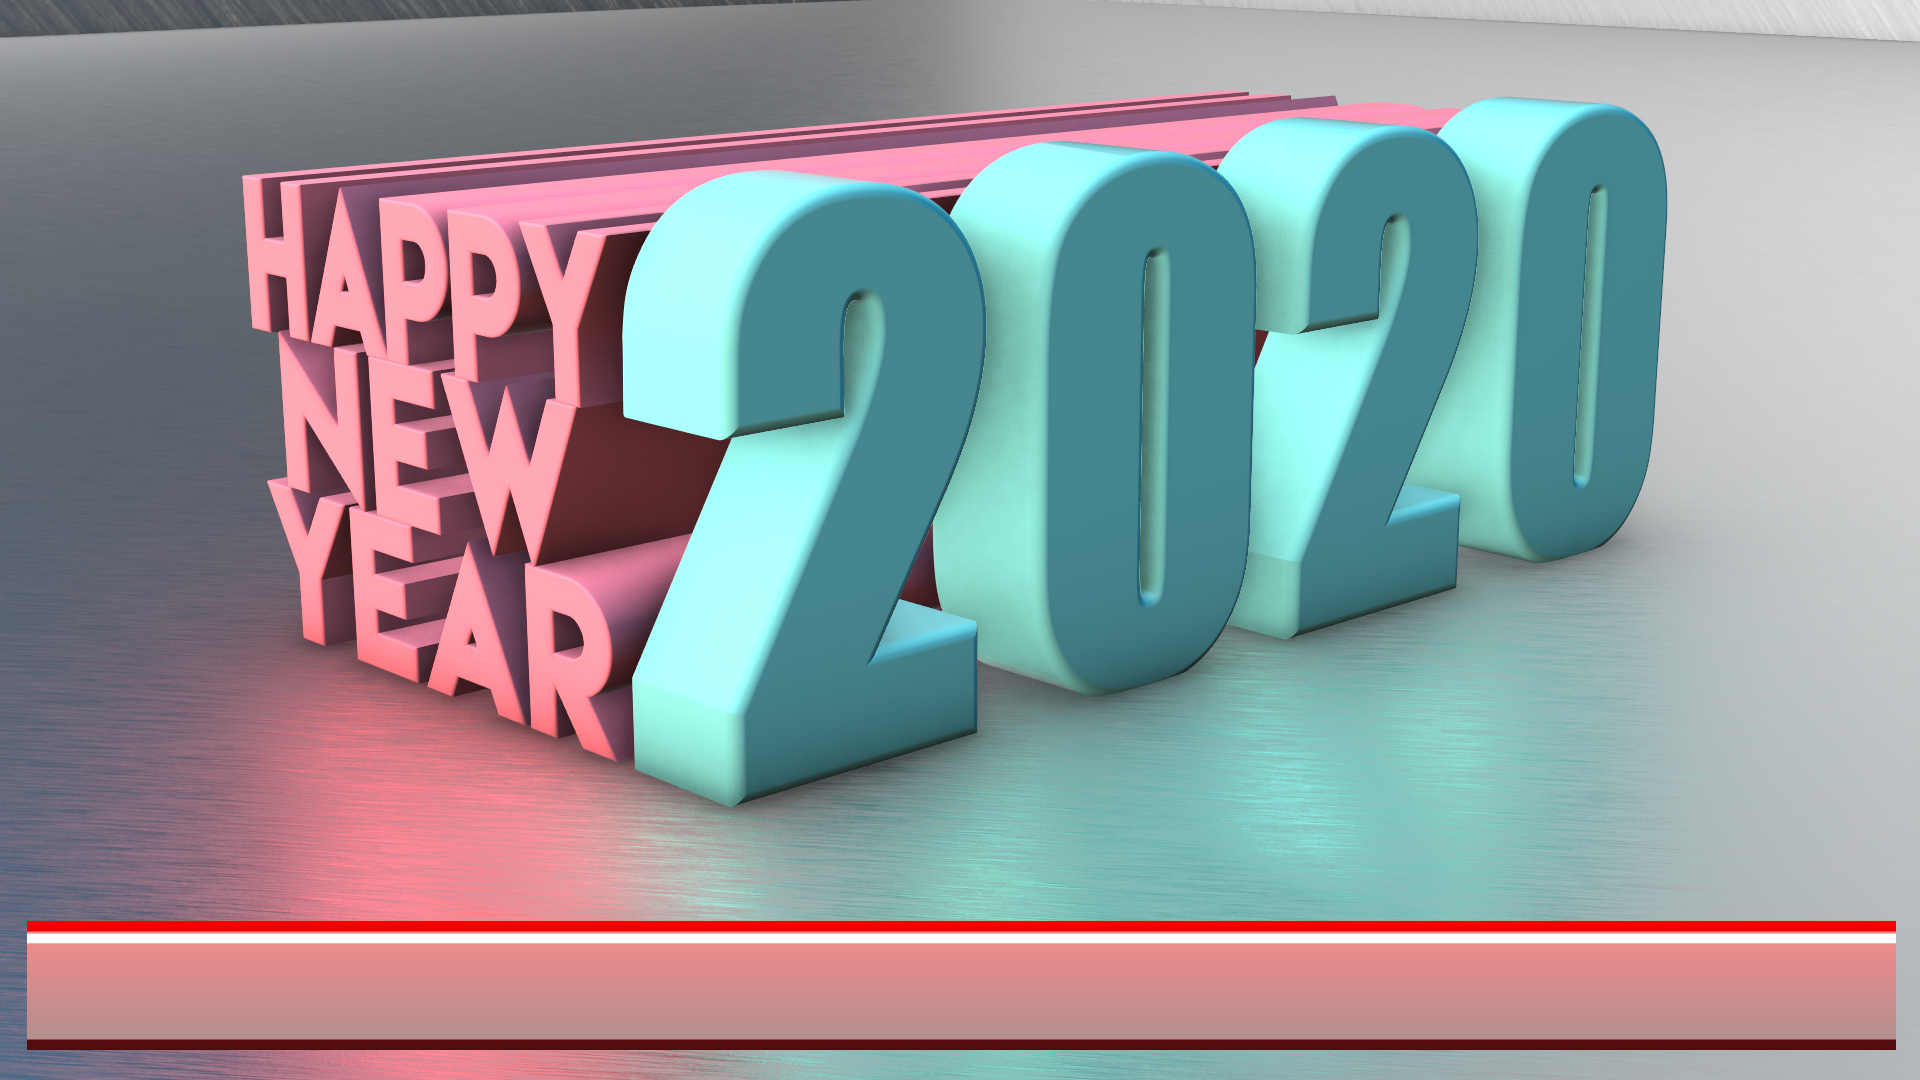 Hapy new year 3D designed wallpapers free download